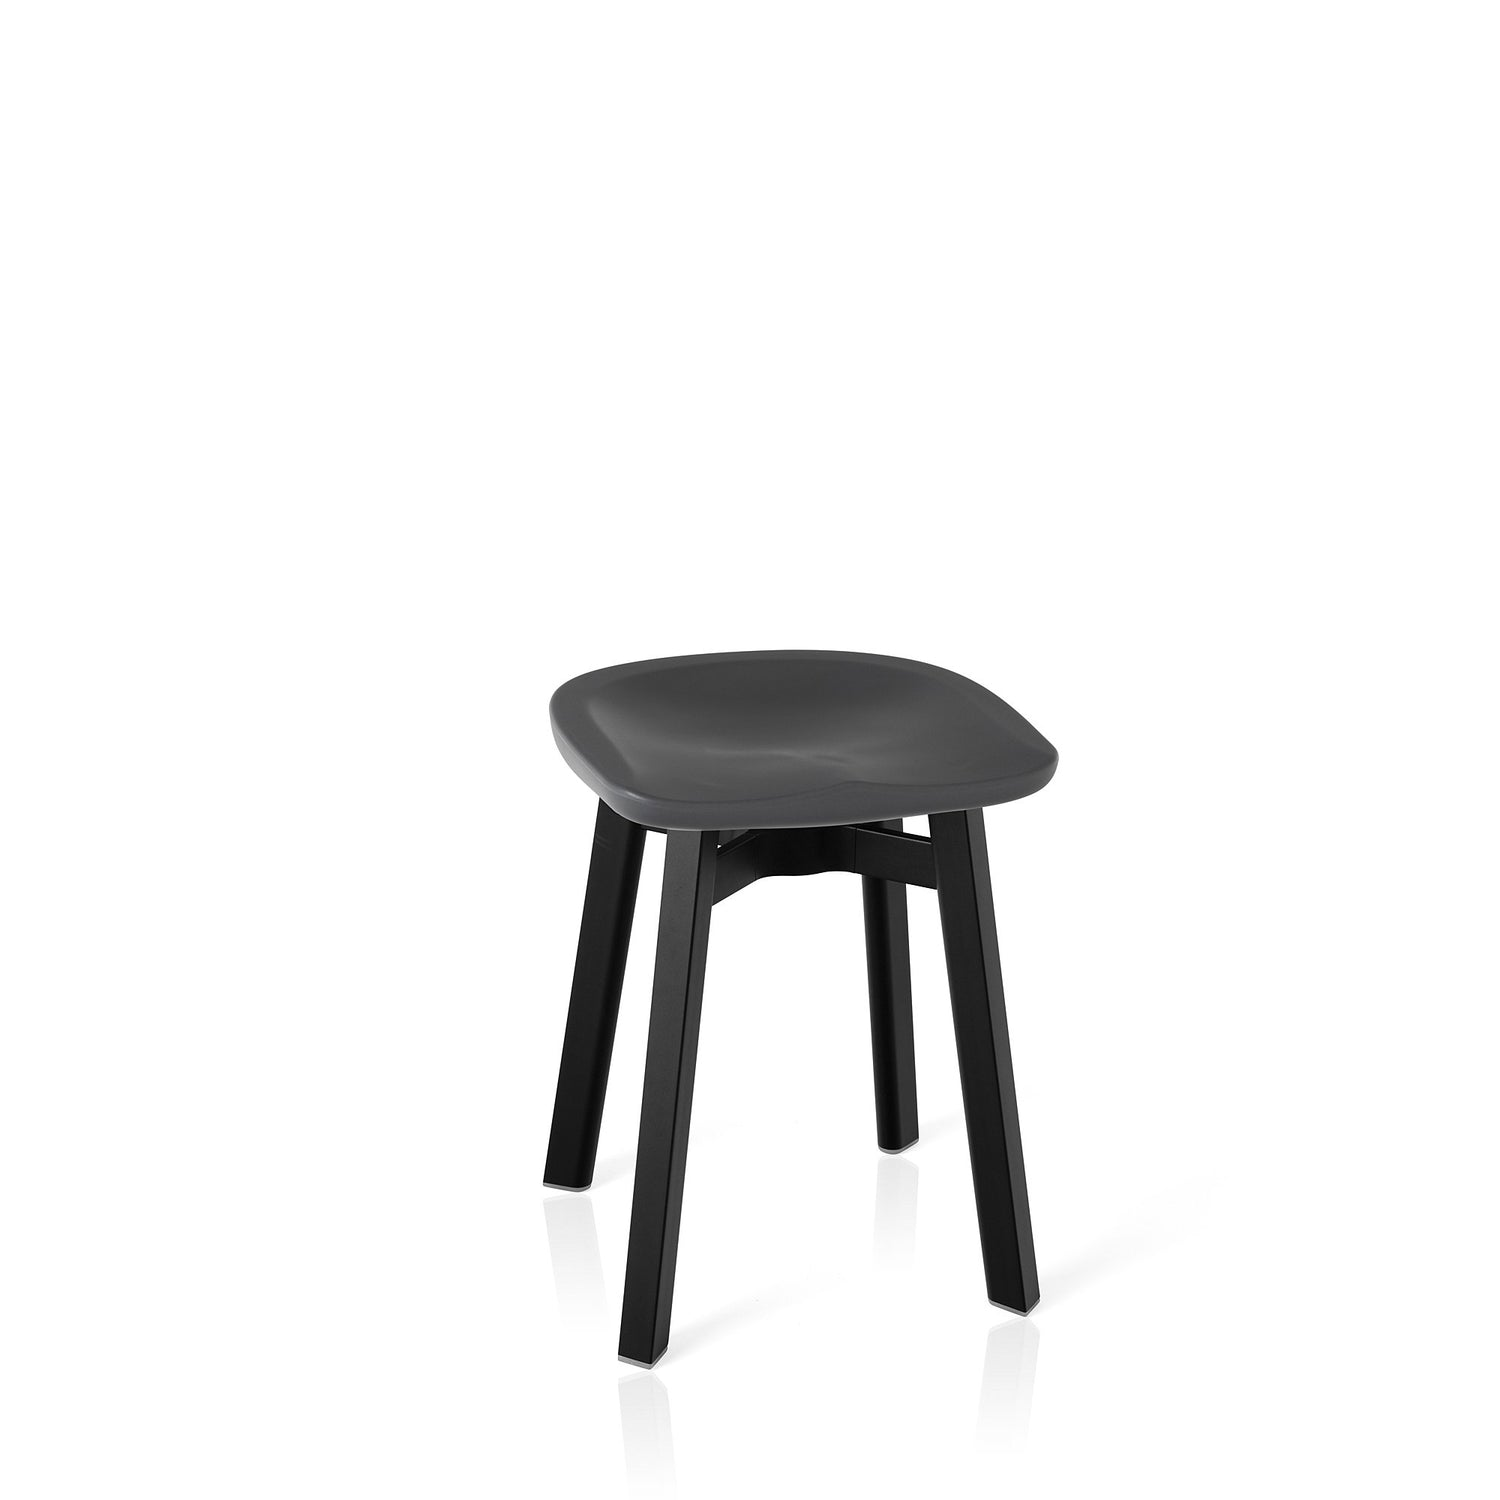 Emeco Su Small Stool - Charcoal Furniture Emeco Charcoal Black Anodized